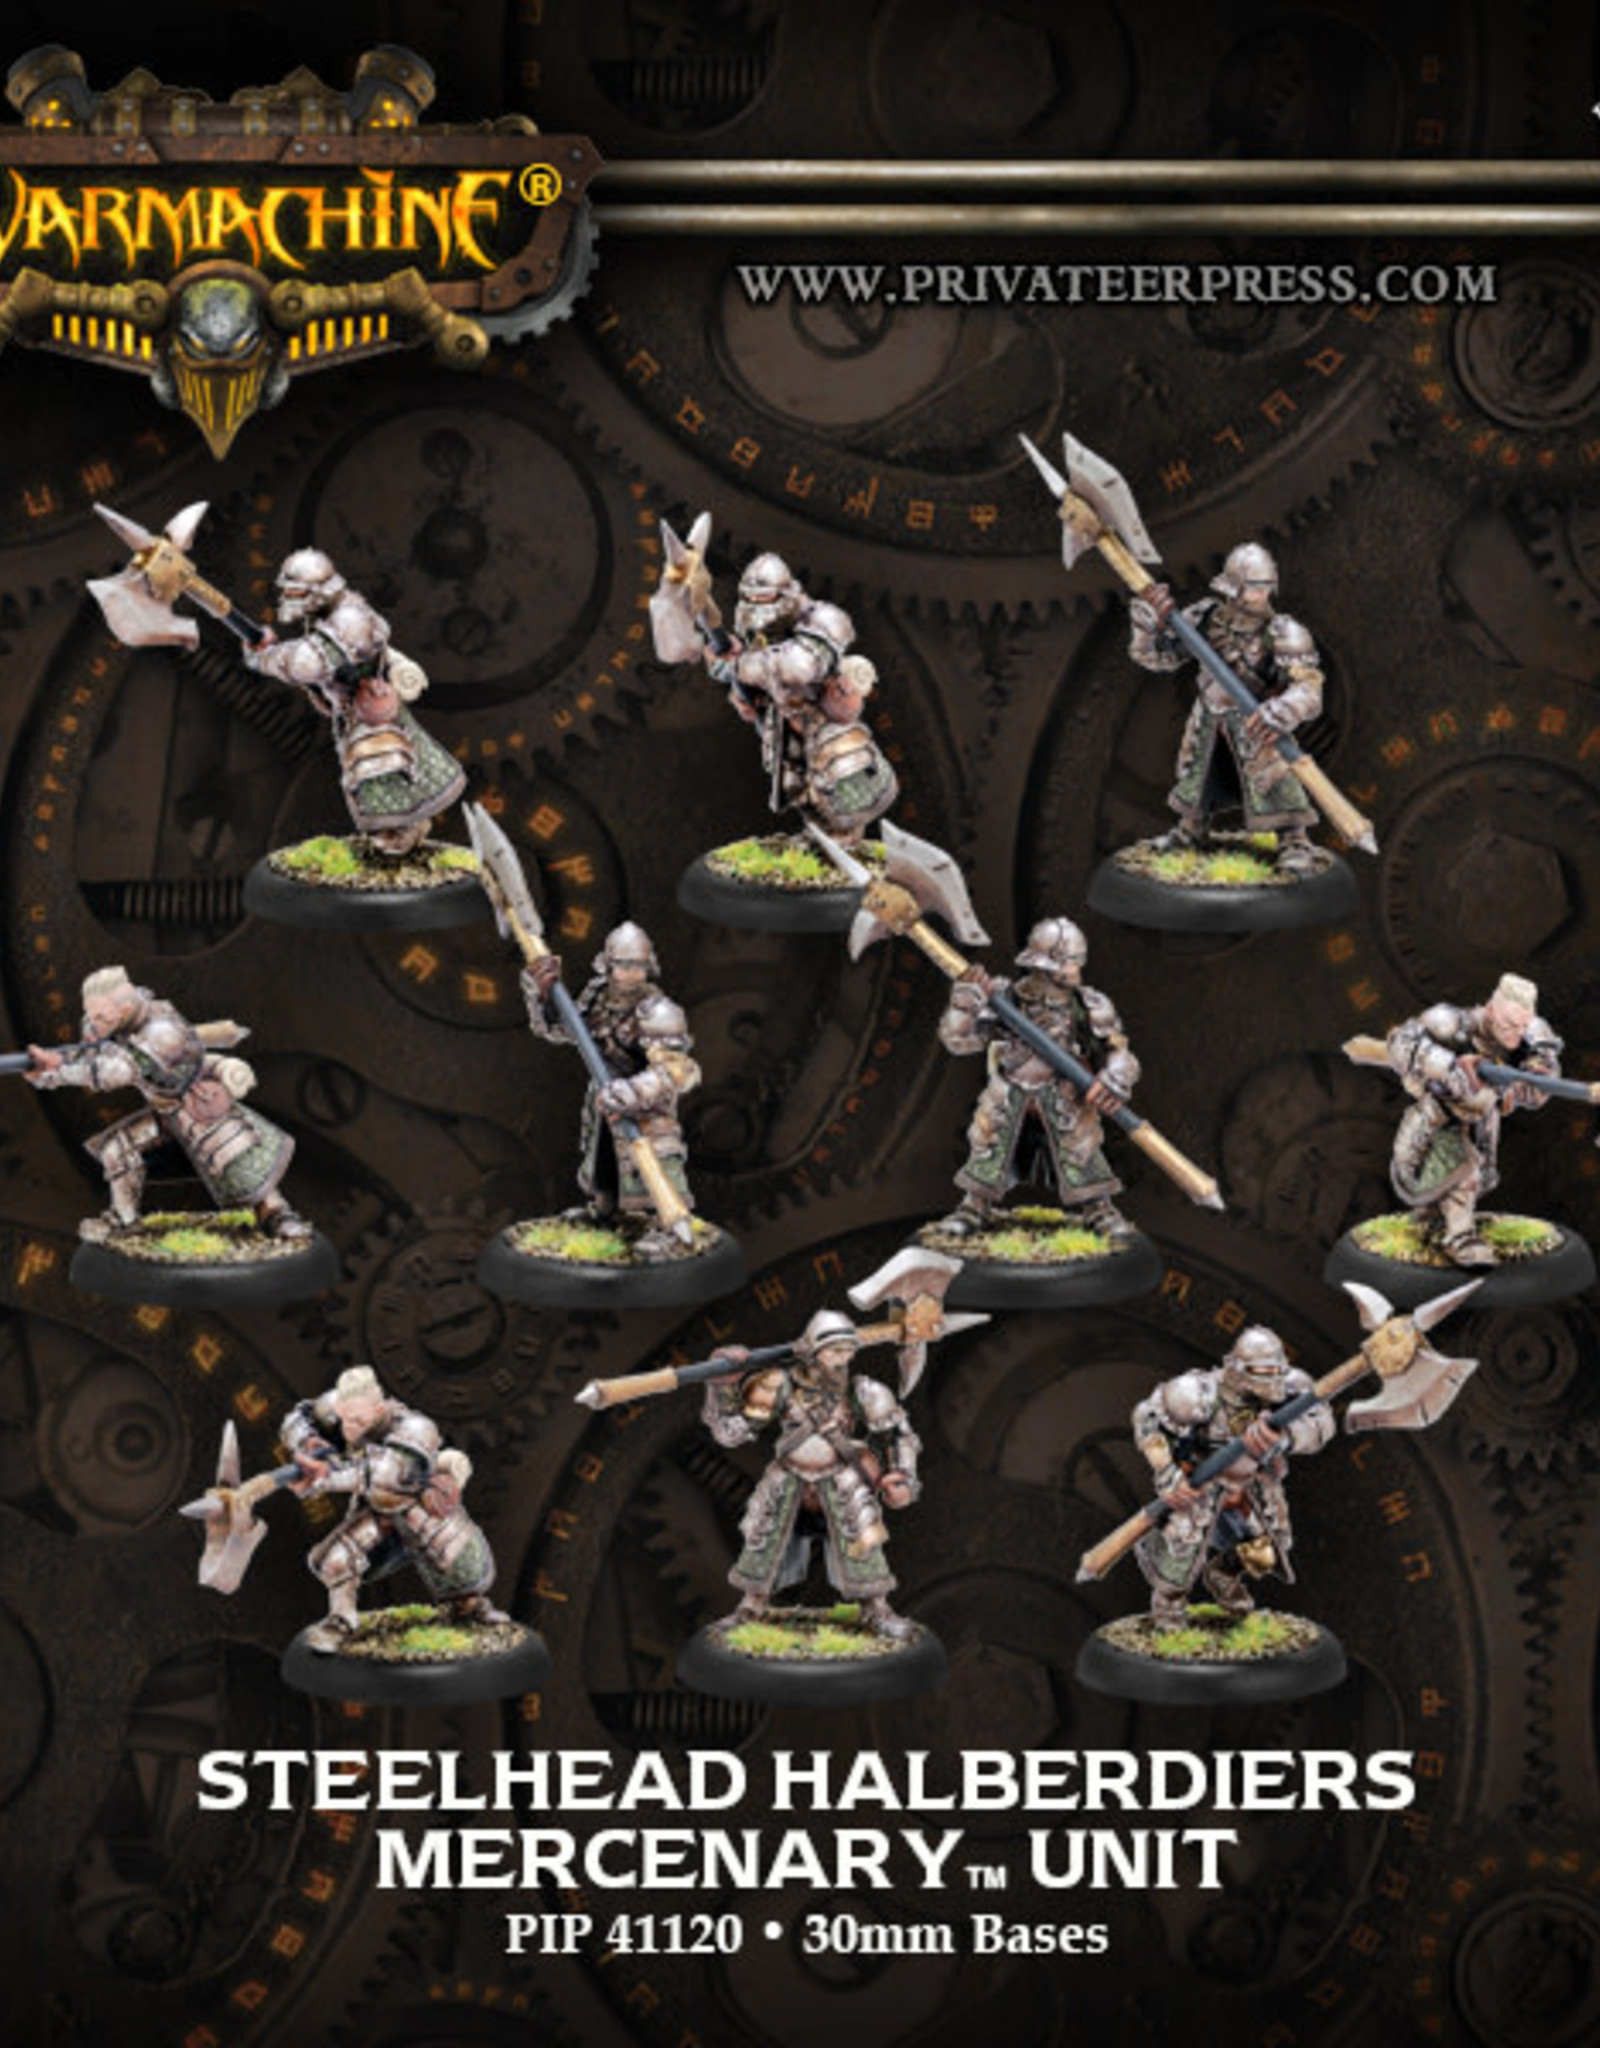 Warmachine Mercenaries - Steelhead Halberdiers/Riflemen